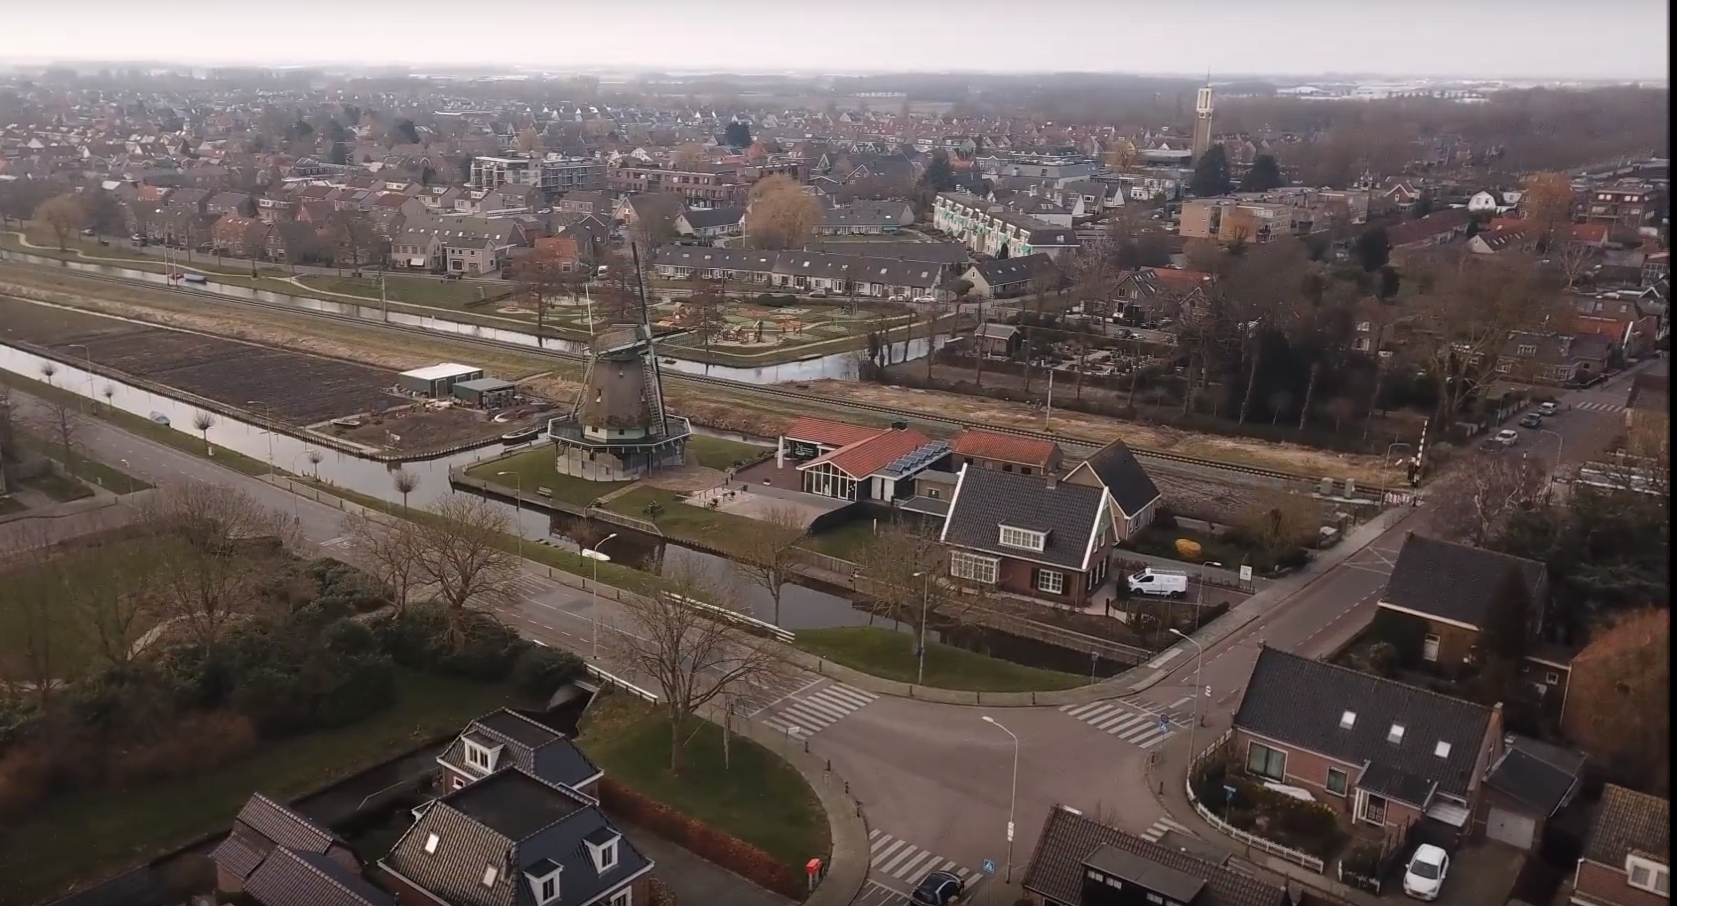 Vogelvlucht over Bovenkarspel [drone video]